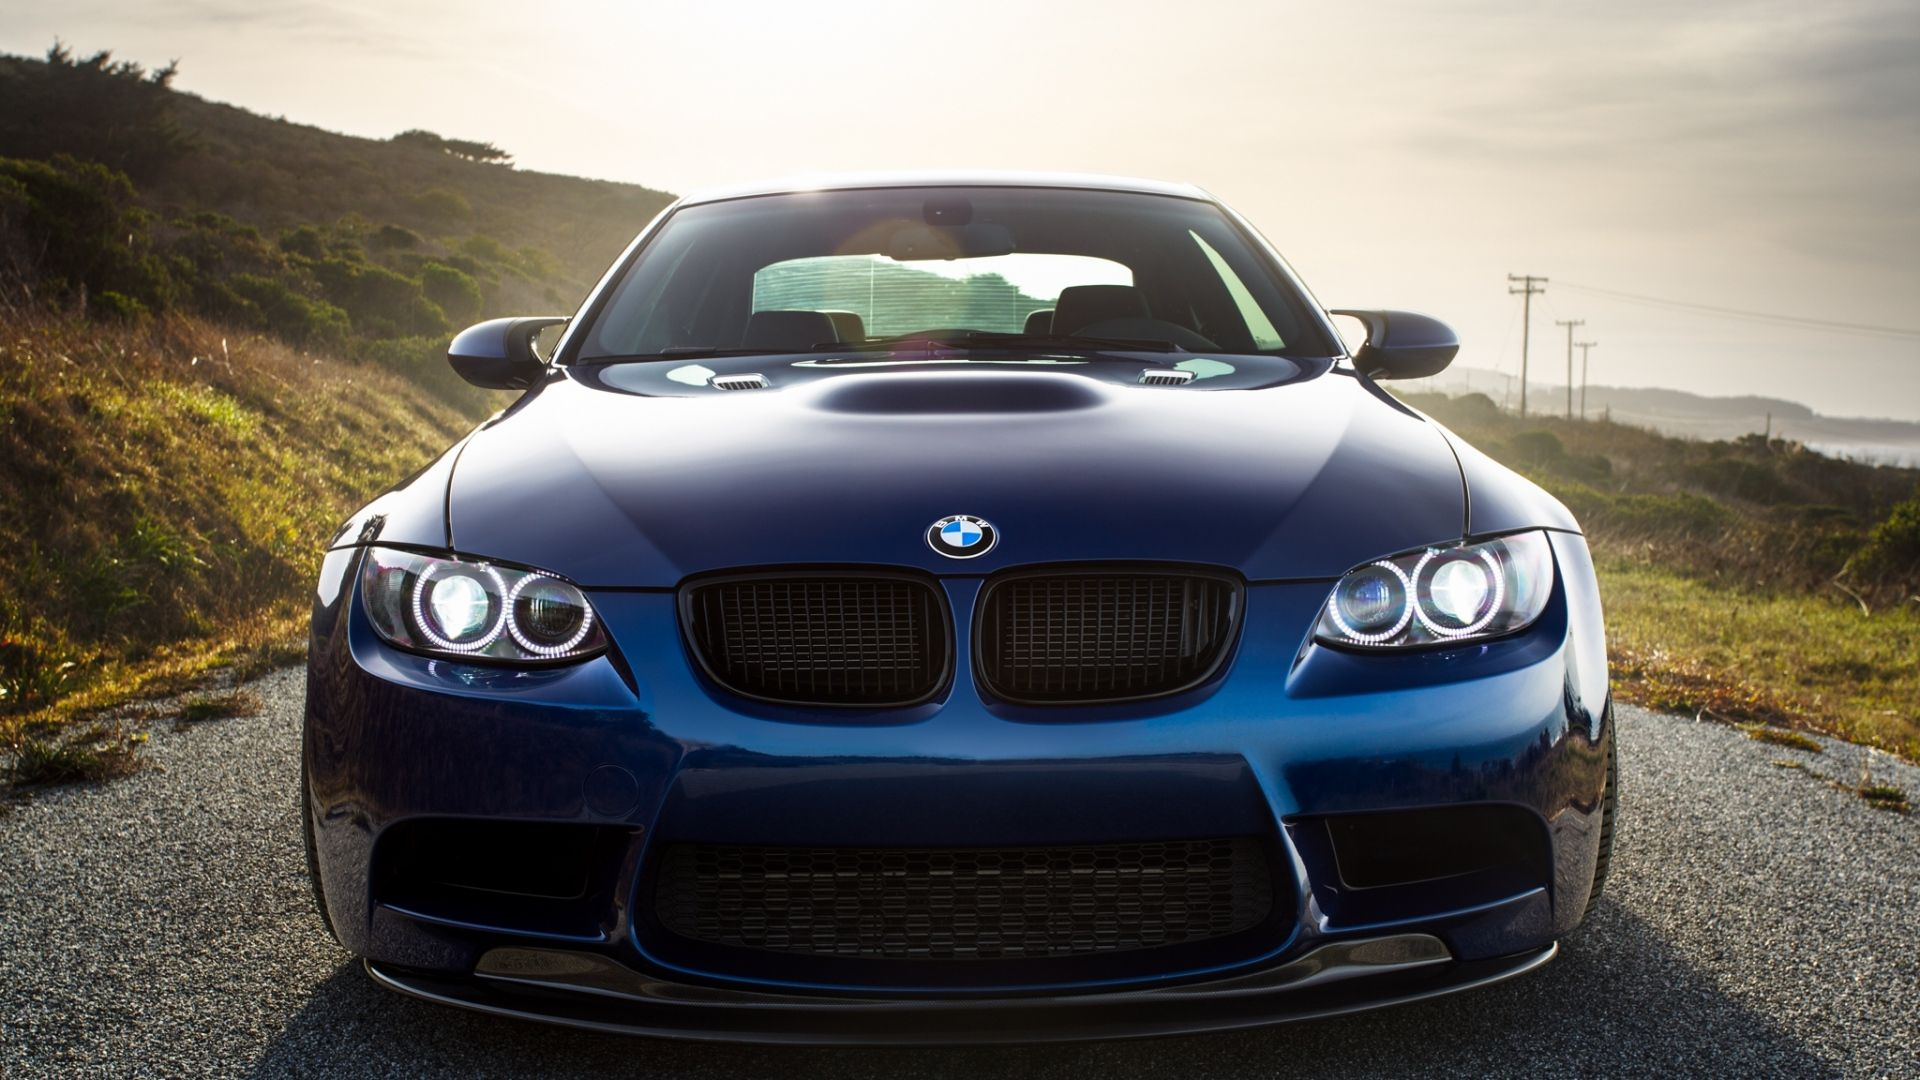 bmw m3 e92 blue in 2020 (With images) Bmw iphone